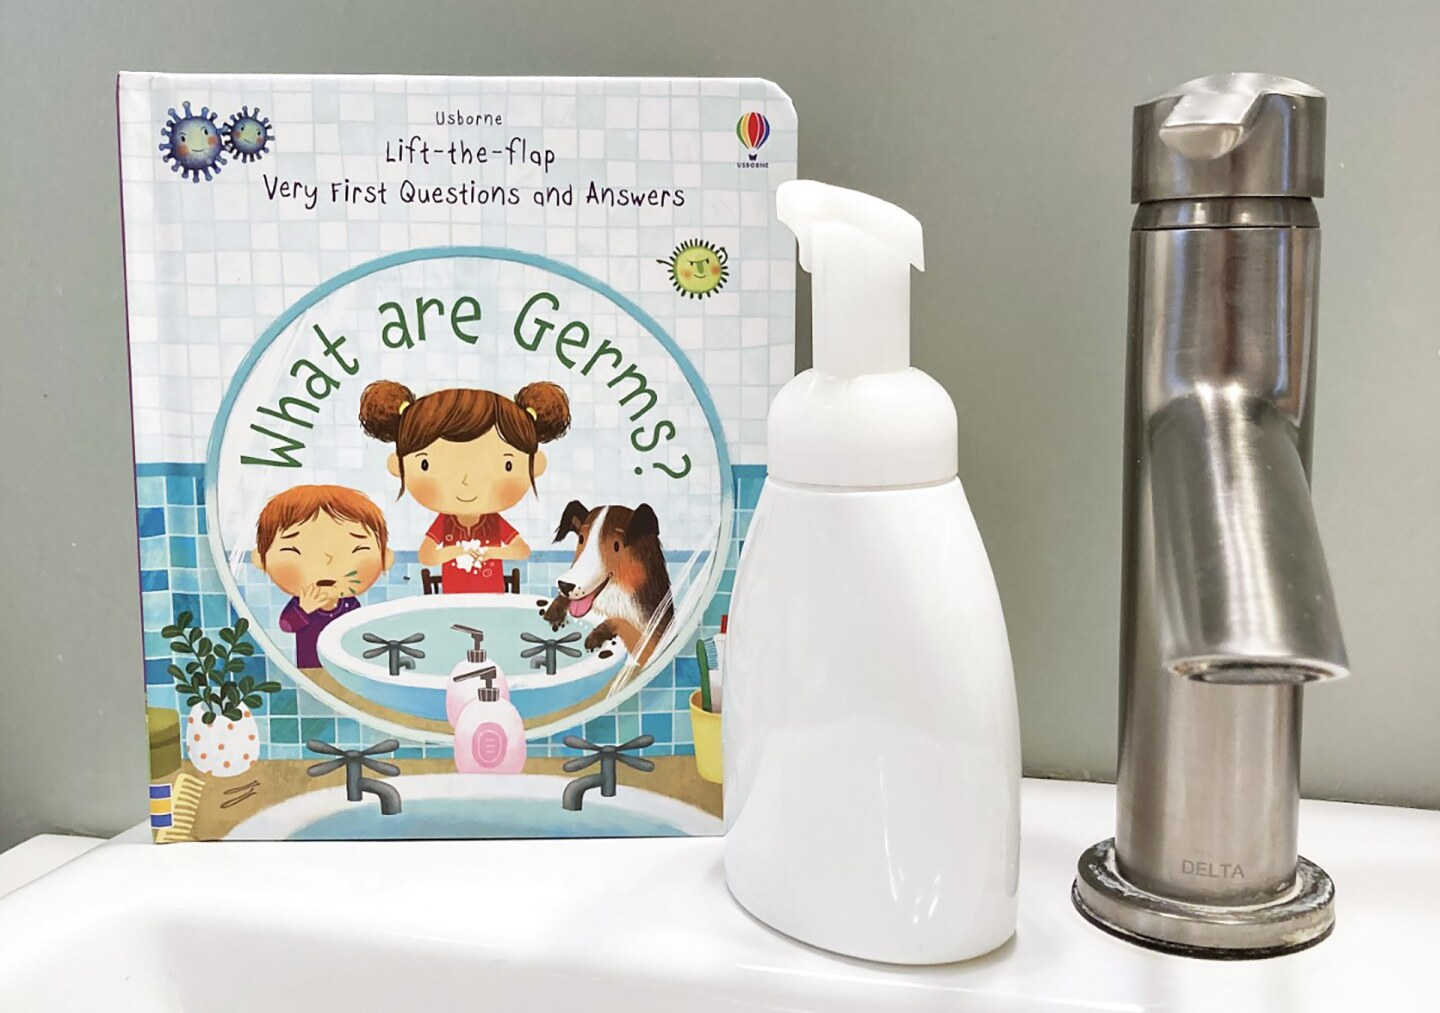 Pandemic kid book next to hand soap and faucet